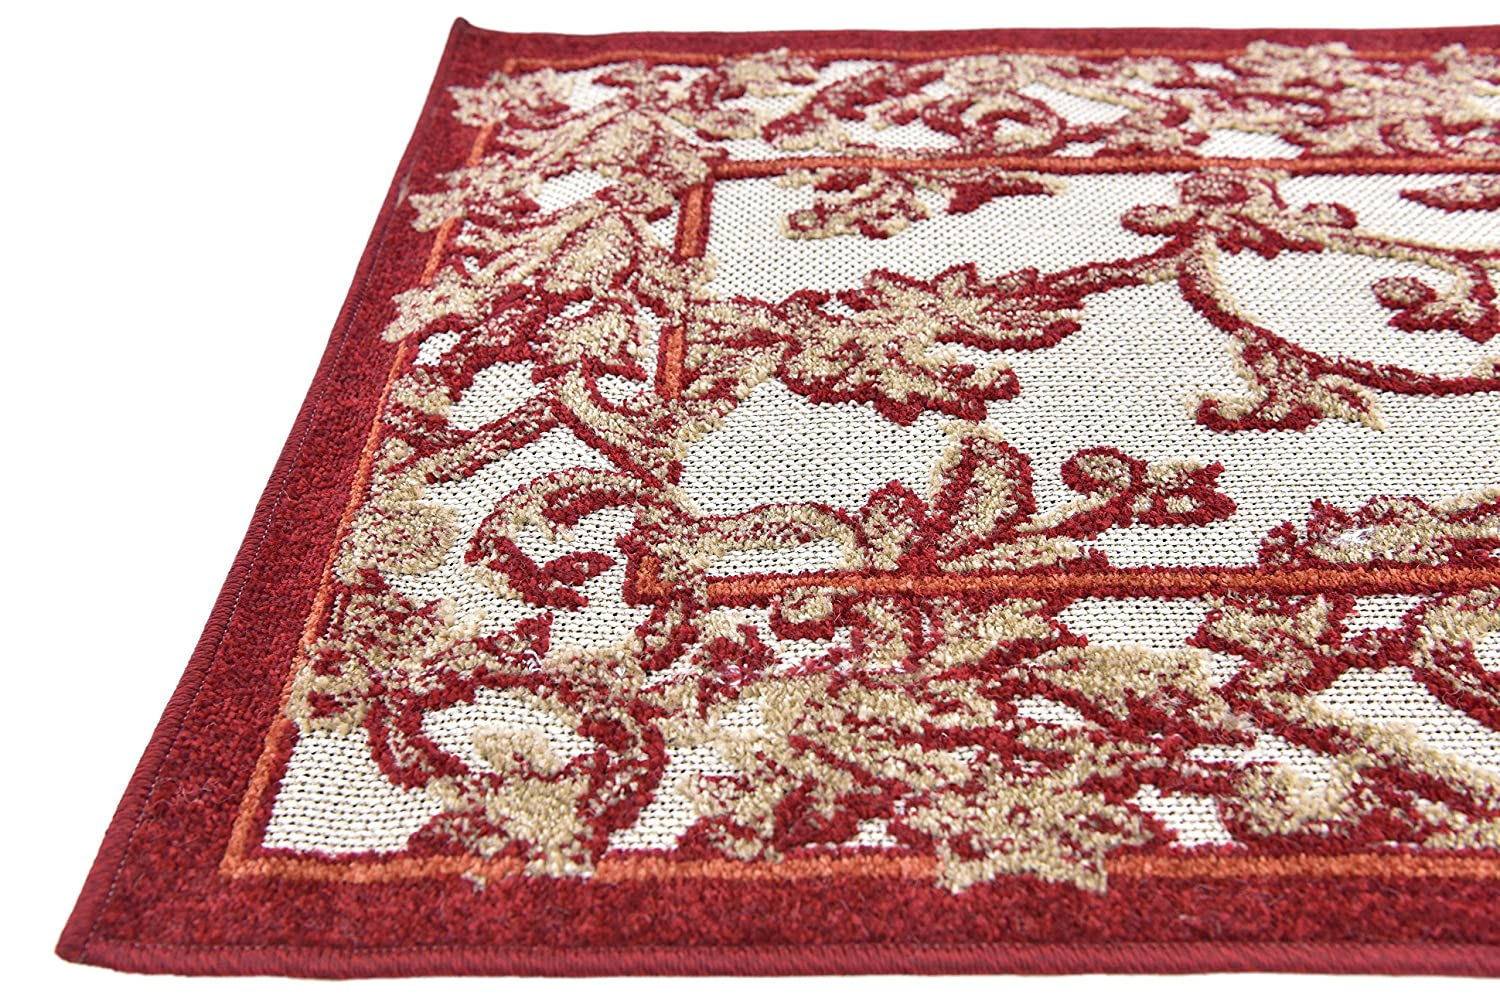 Unique Loom Outdoor Botanical Collection Carved Botanical Border Transitional Indoor and Outdoor Flatweave Beige //Red  Runner Rug 2 x 6